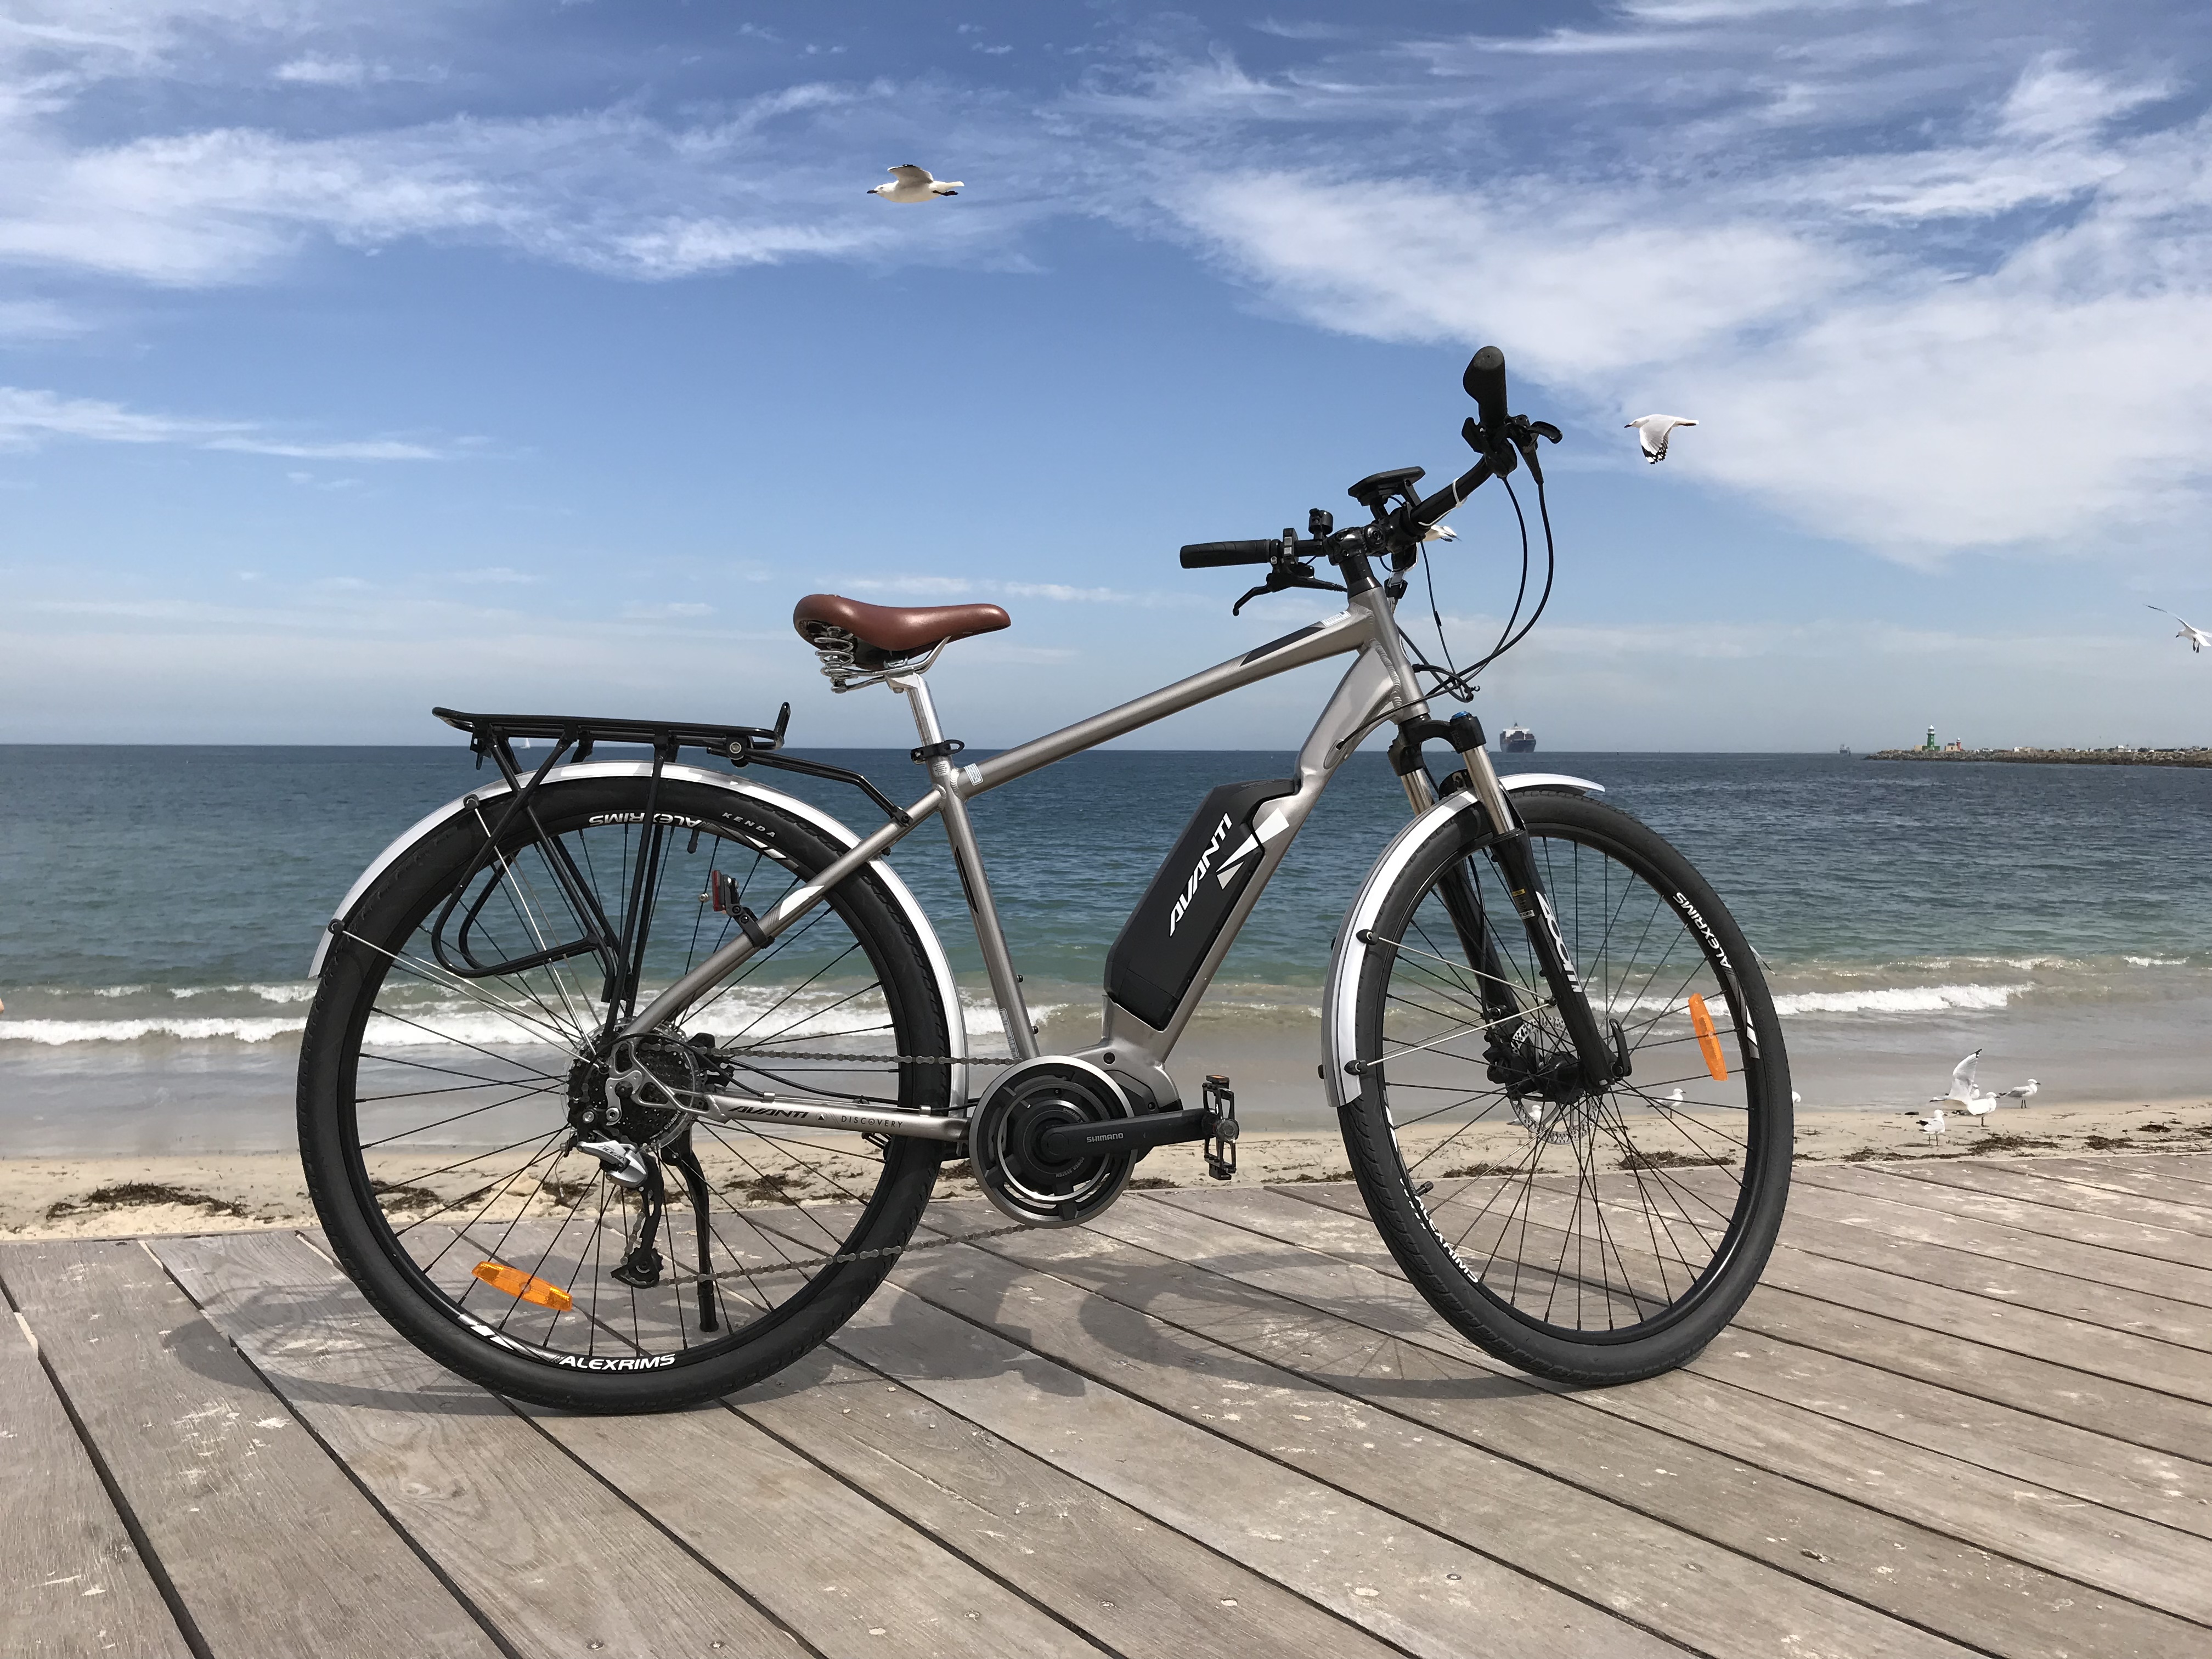 PERTH ELECTRIC BICYCLES - PERTH ELECTRIC BICYCLES is located in